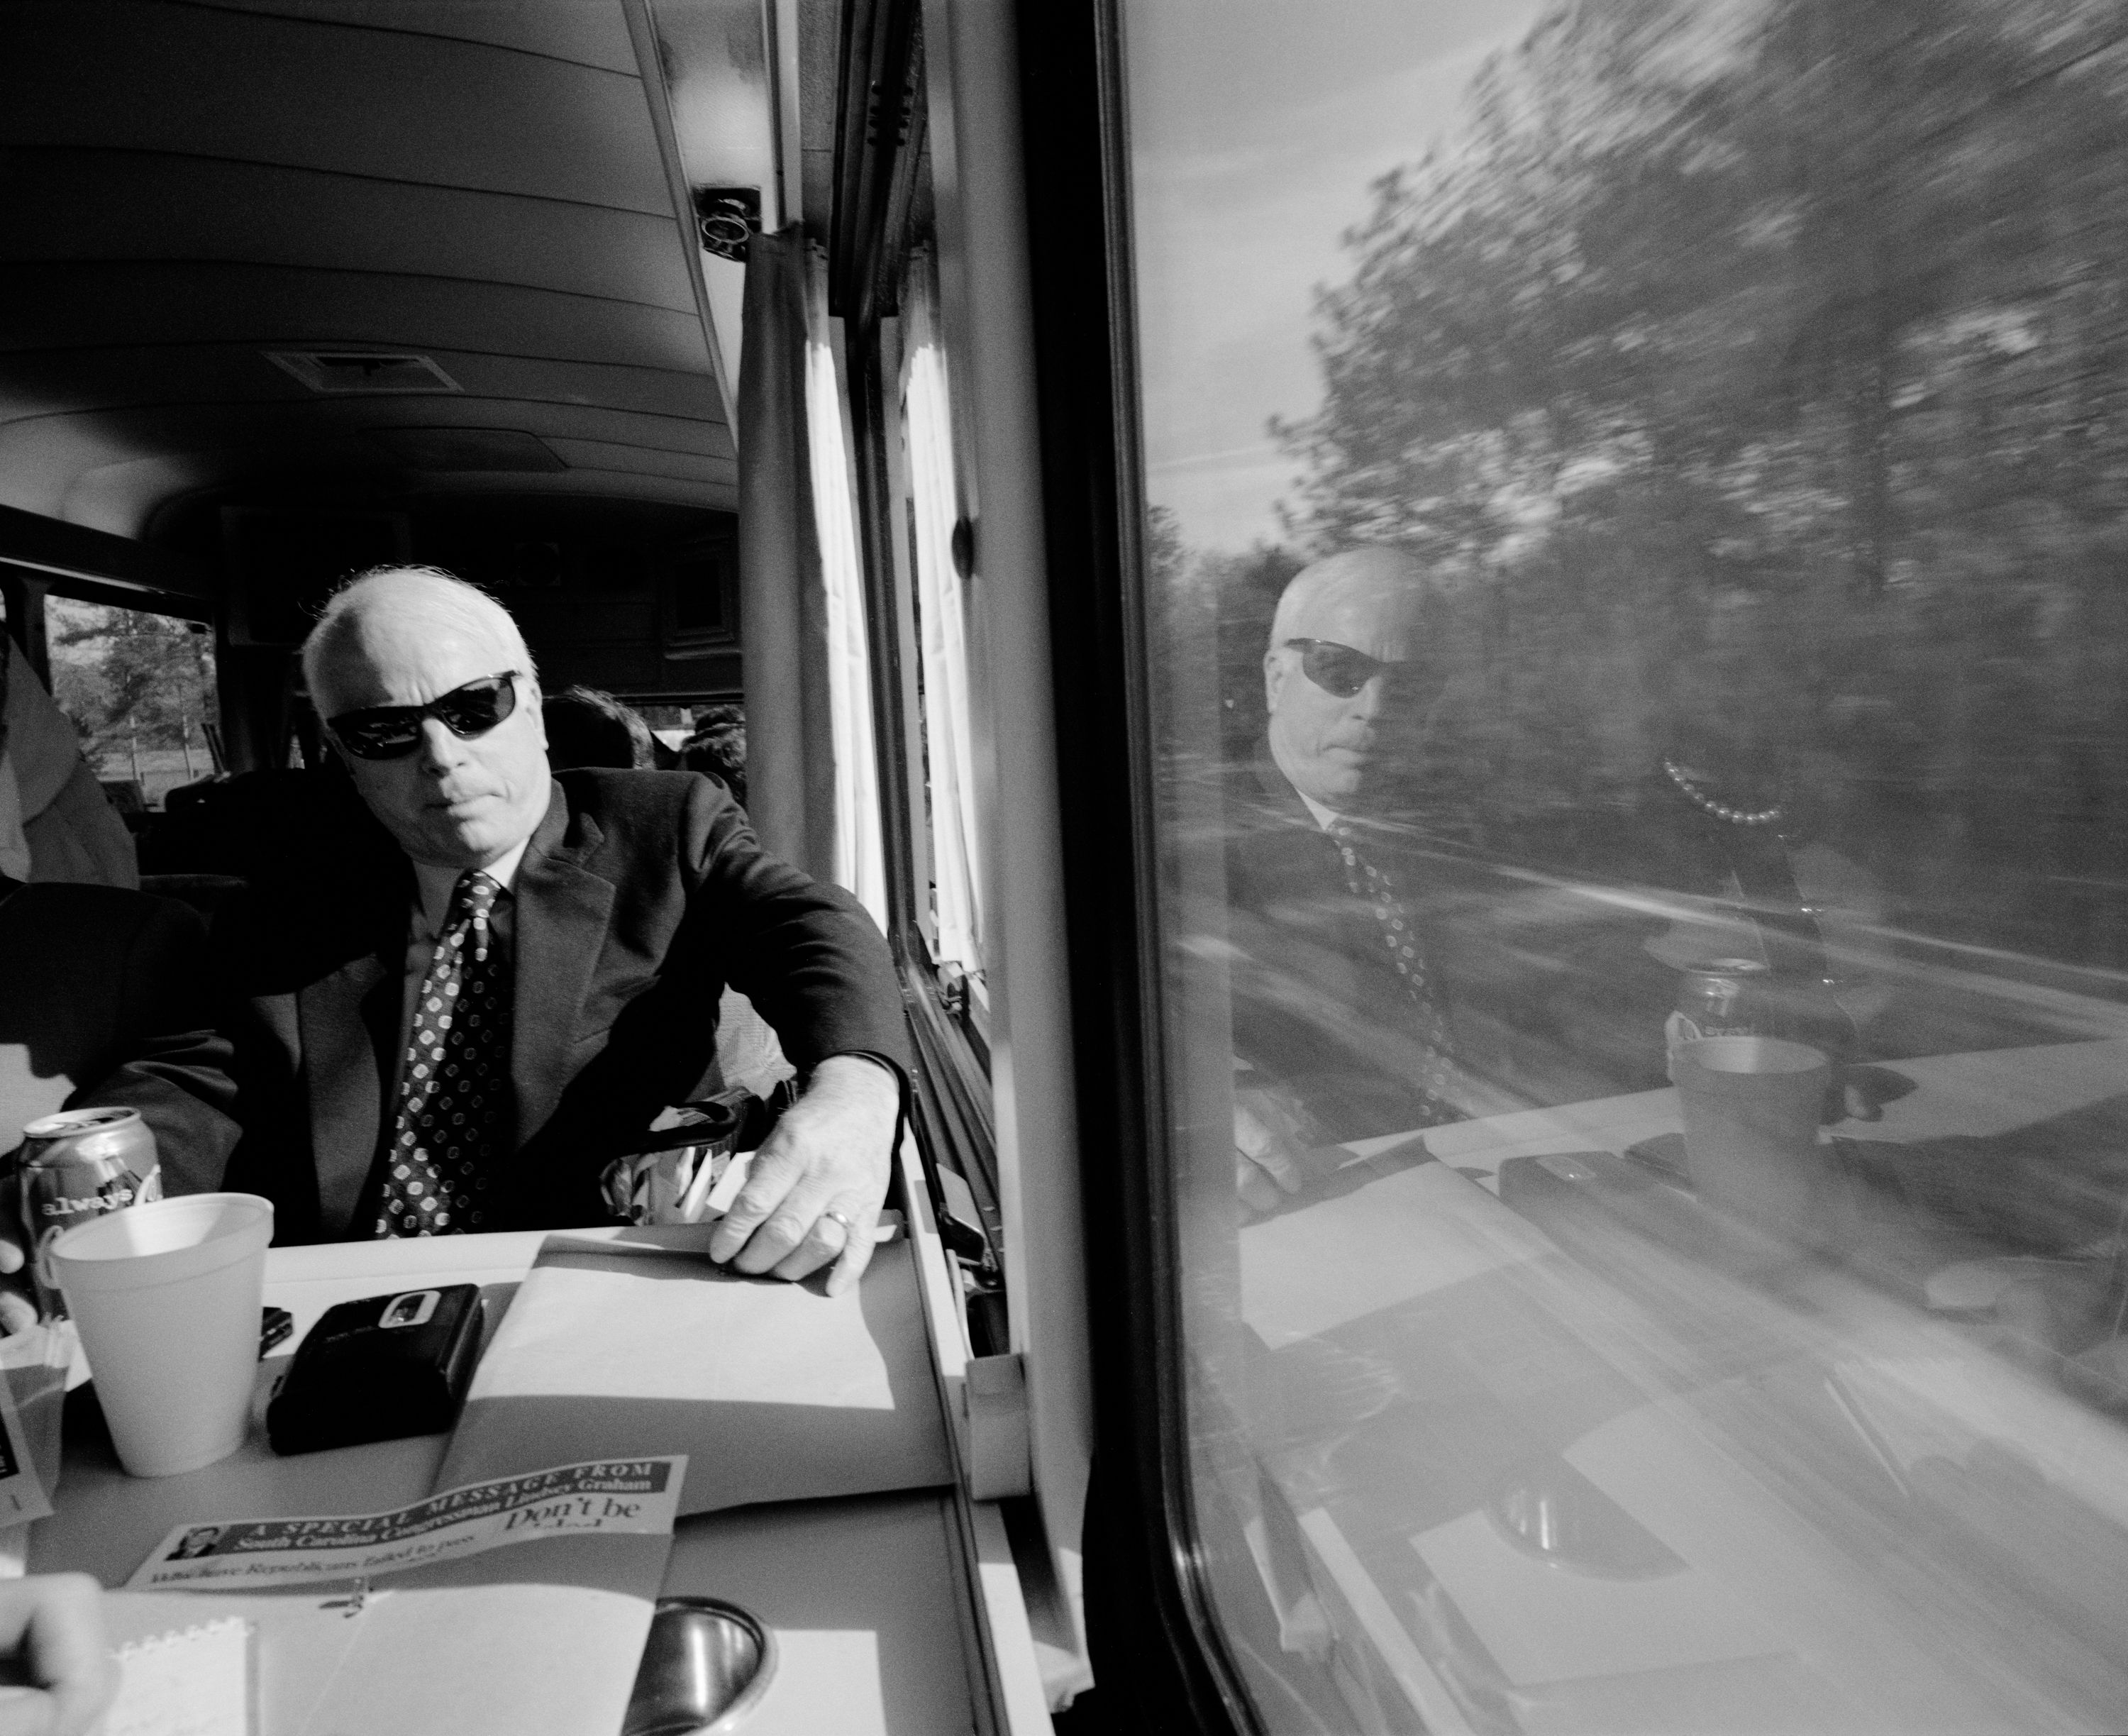 May 22 2018 Axios Brain Made Of Glass And Circuit Board Stock Illustration Getty Sen John Mccain On His Straight Talk Express Bus In Columbia Sc Jan 7 2000david Hume Kennerly Images